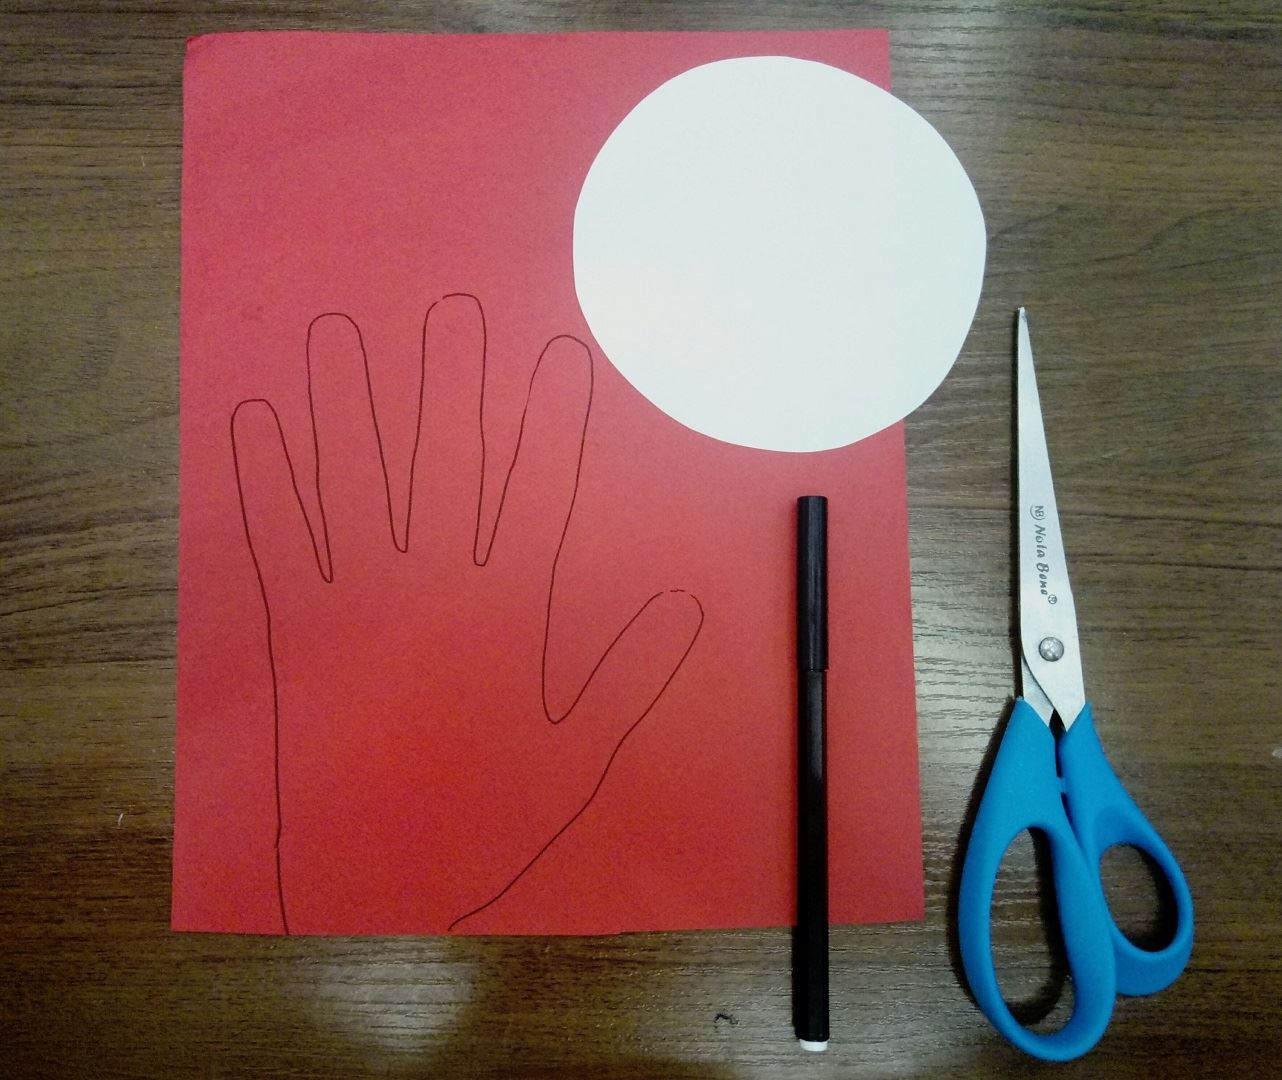 On the red A4 sheet, draw your palm along the contour. Then cut out the white circle as in the photo.